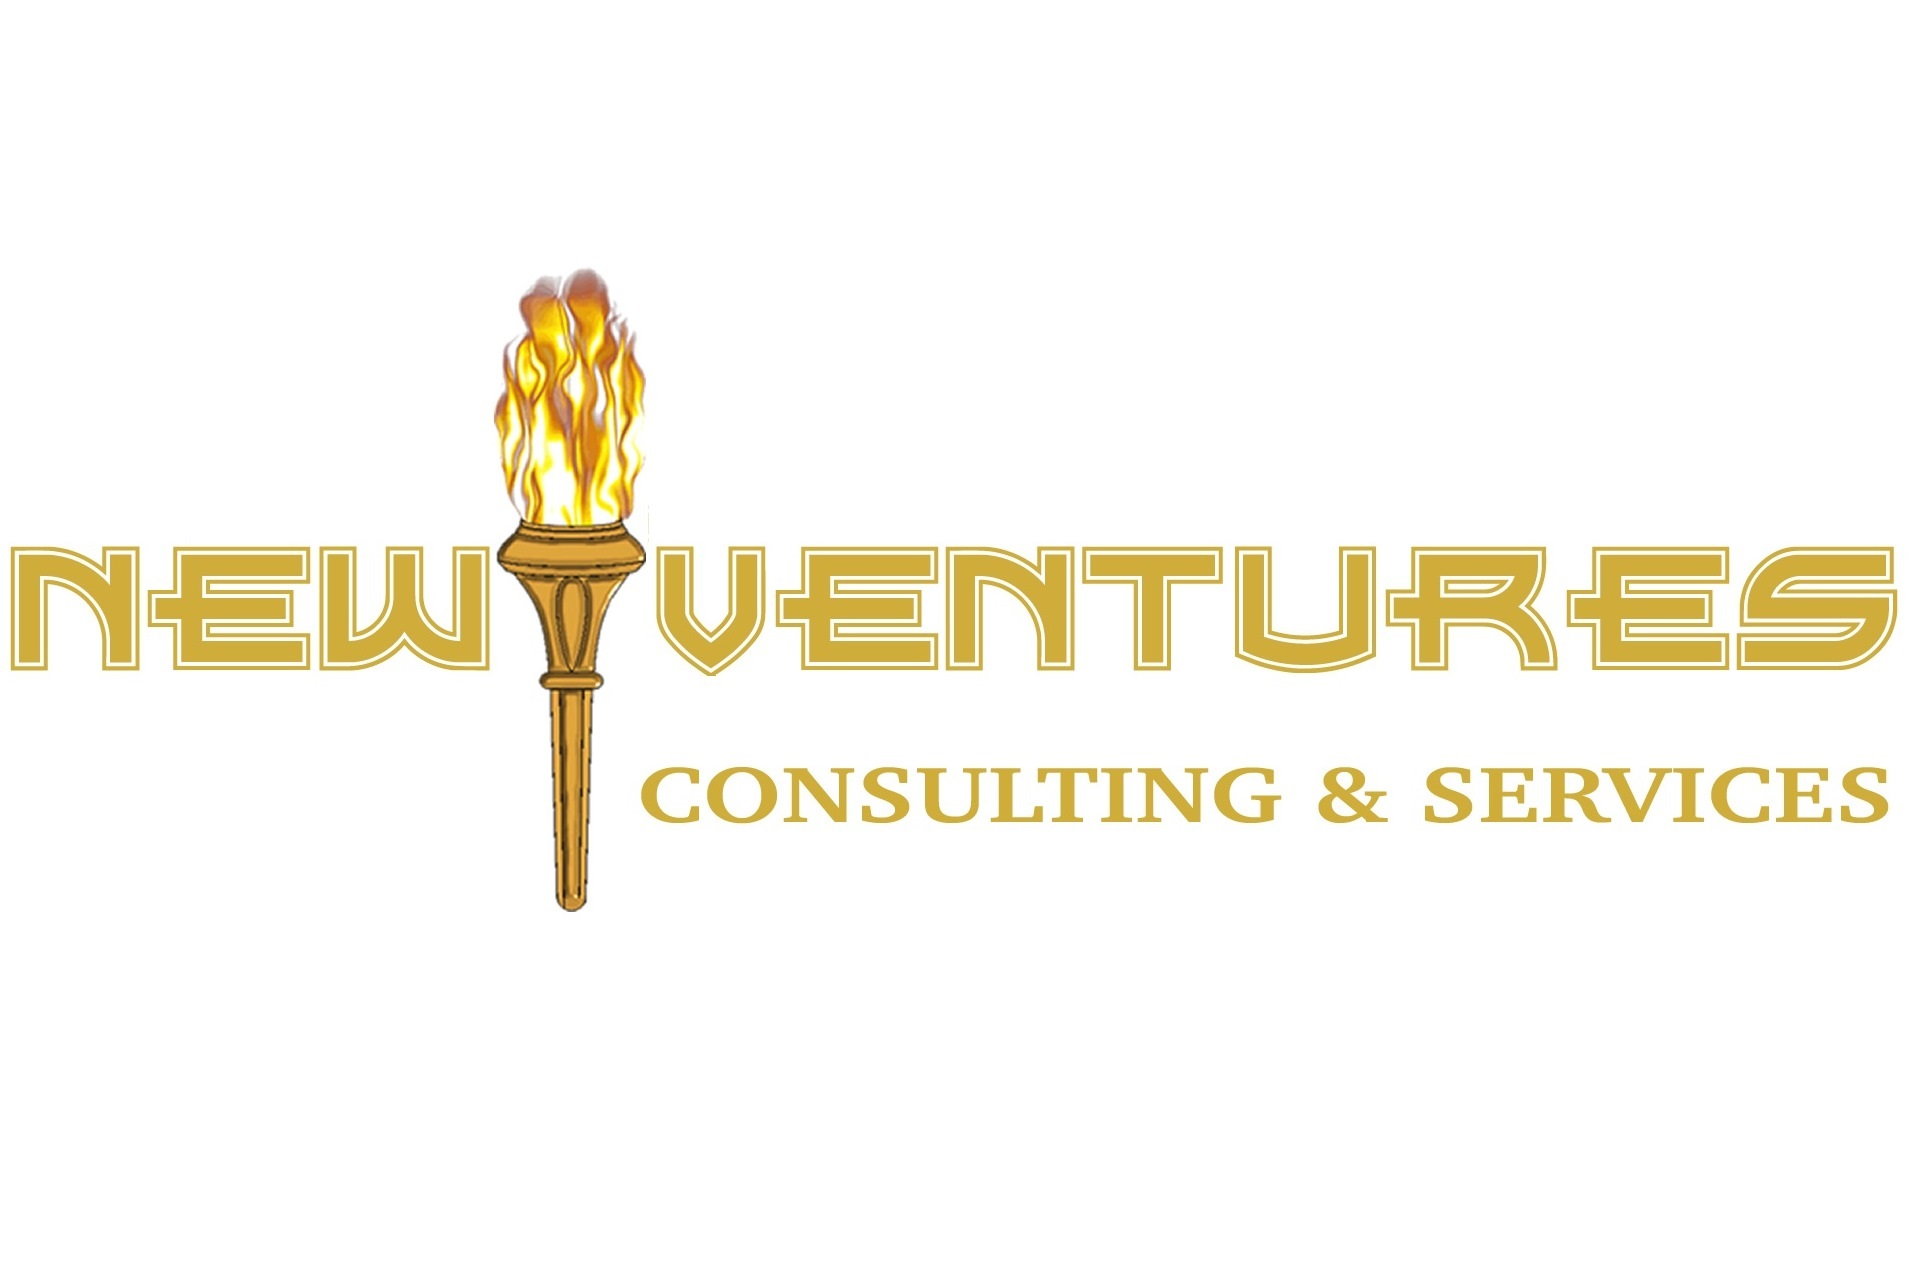 New Ventures Consulting & Services